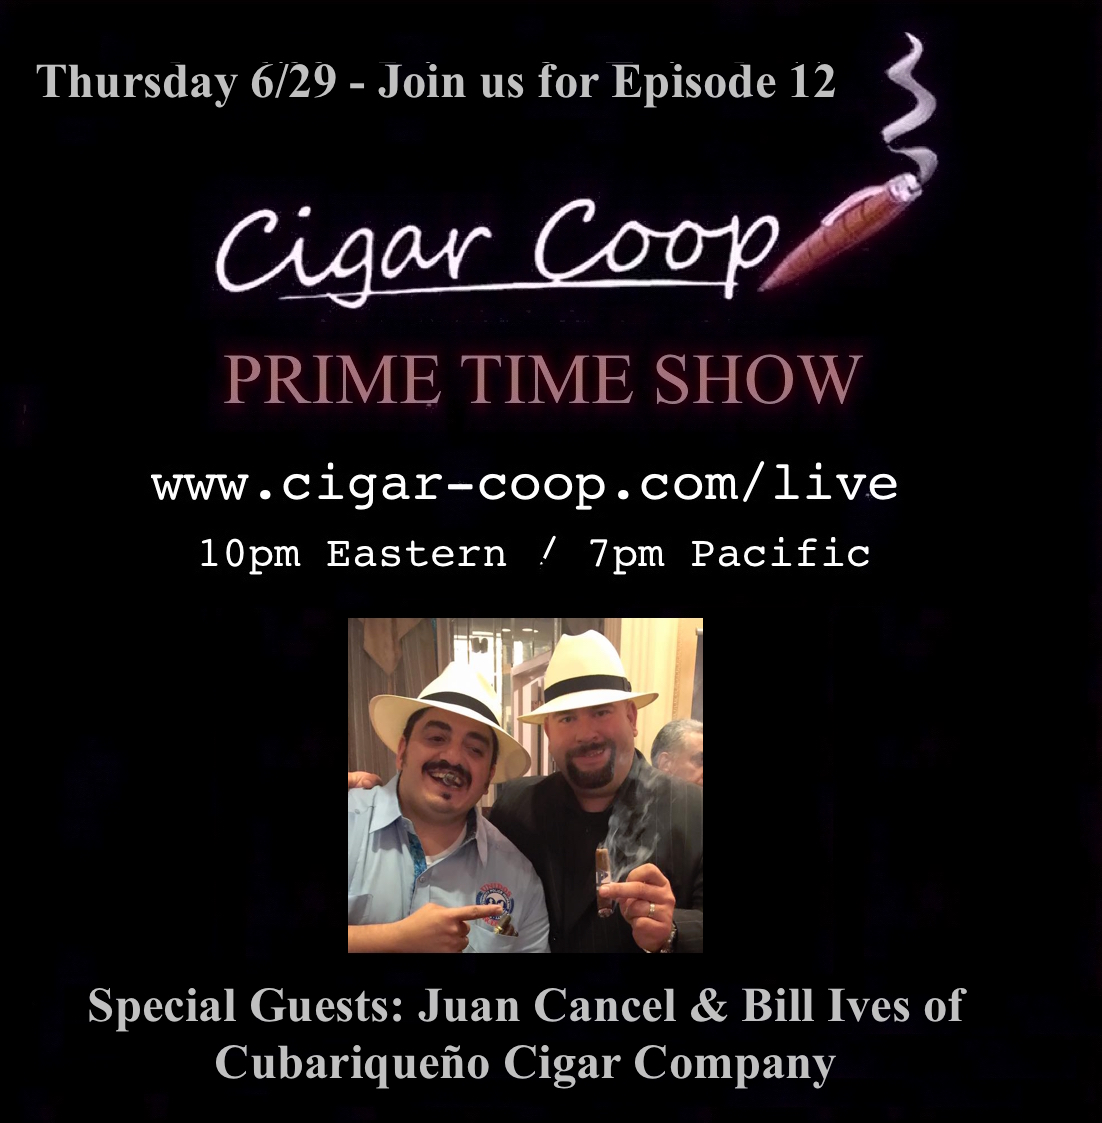 Announcement: Prime Time Show Episode 12: 6/29/17 10pm Eastern, 7pm Pacific